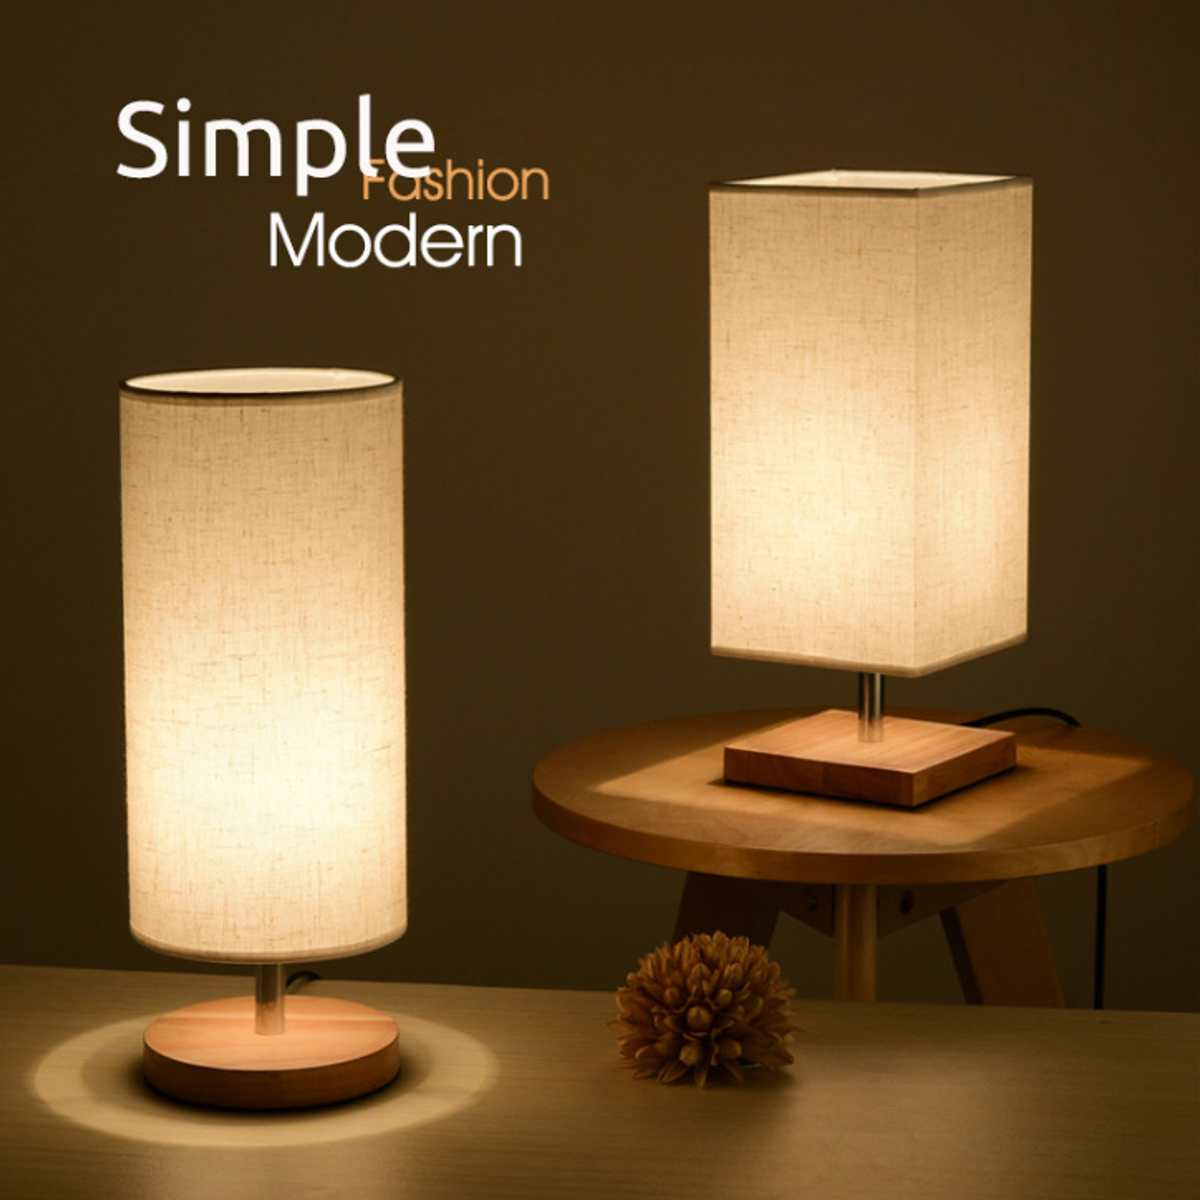 Nordic Modern Wood Desk Lamp Bedroom Bedside Wooden Table Lamps Muliticolor Simple Metal Table Fixtures Room Decor Lighting E27 Led Table Lamps